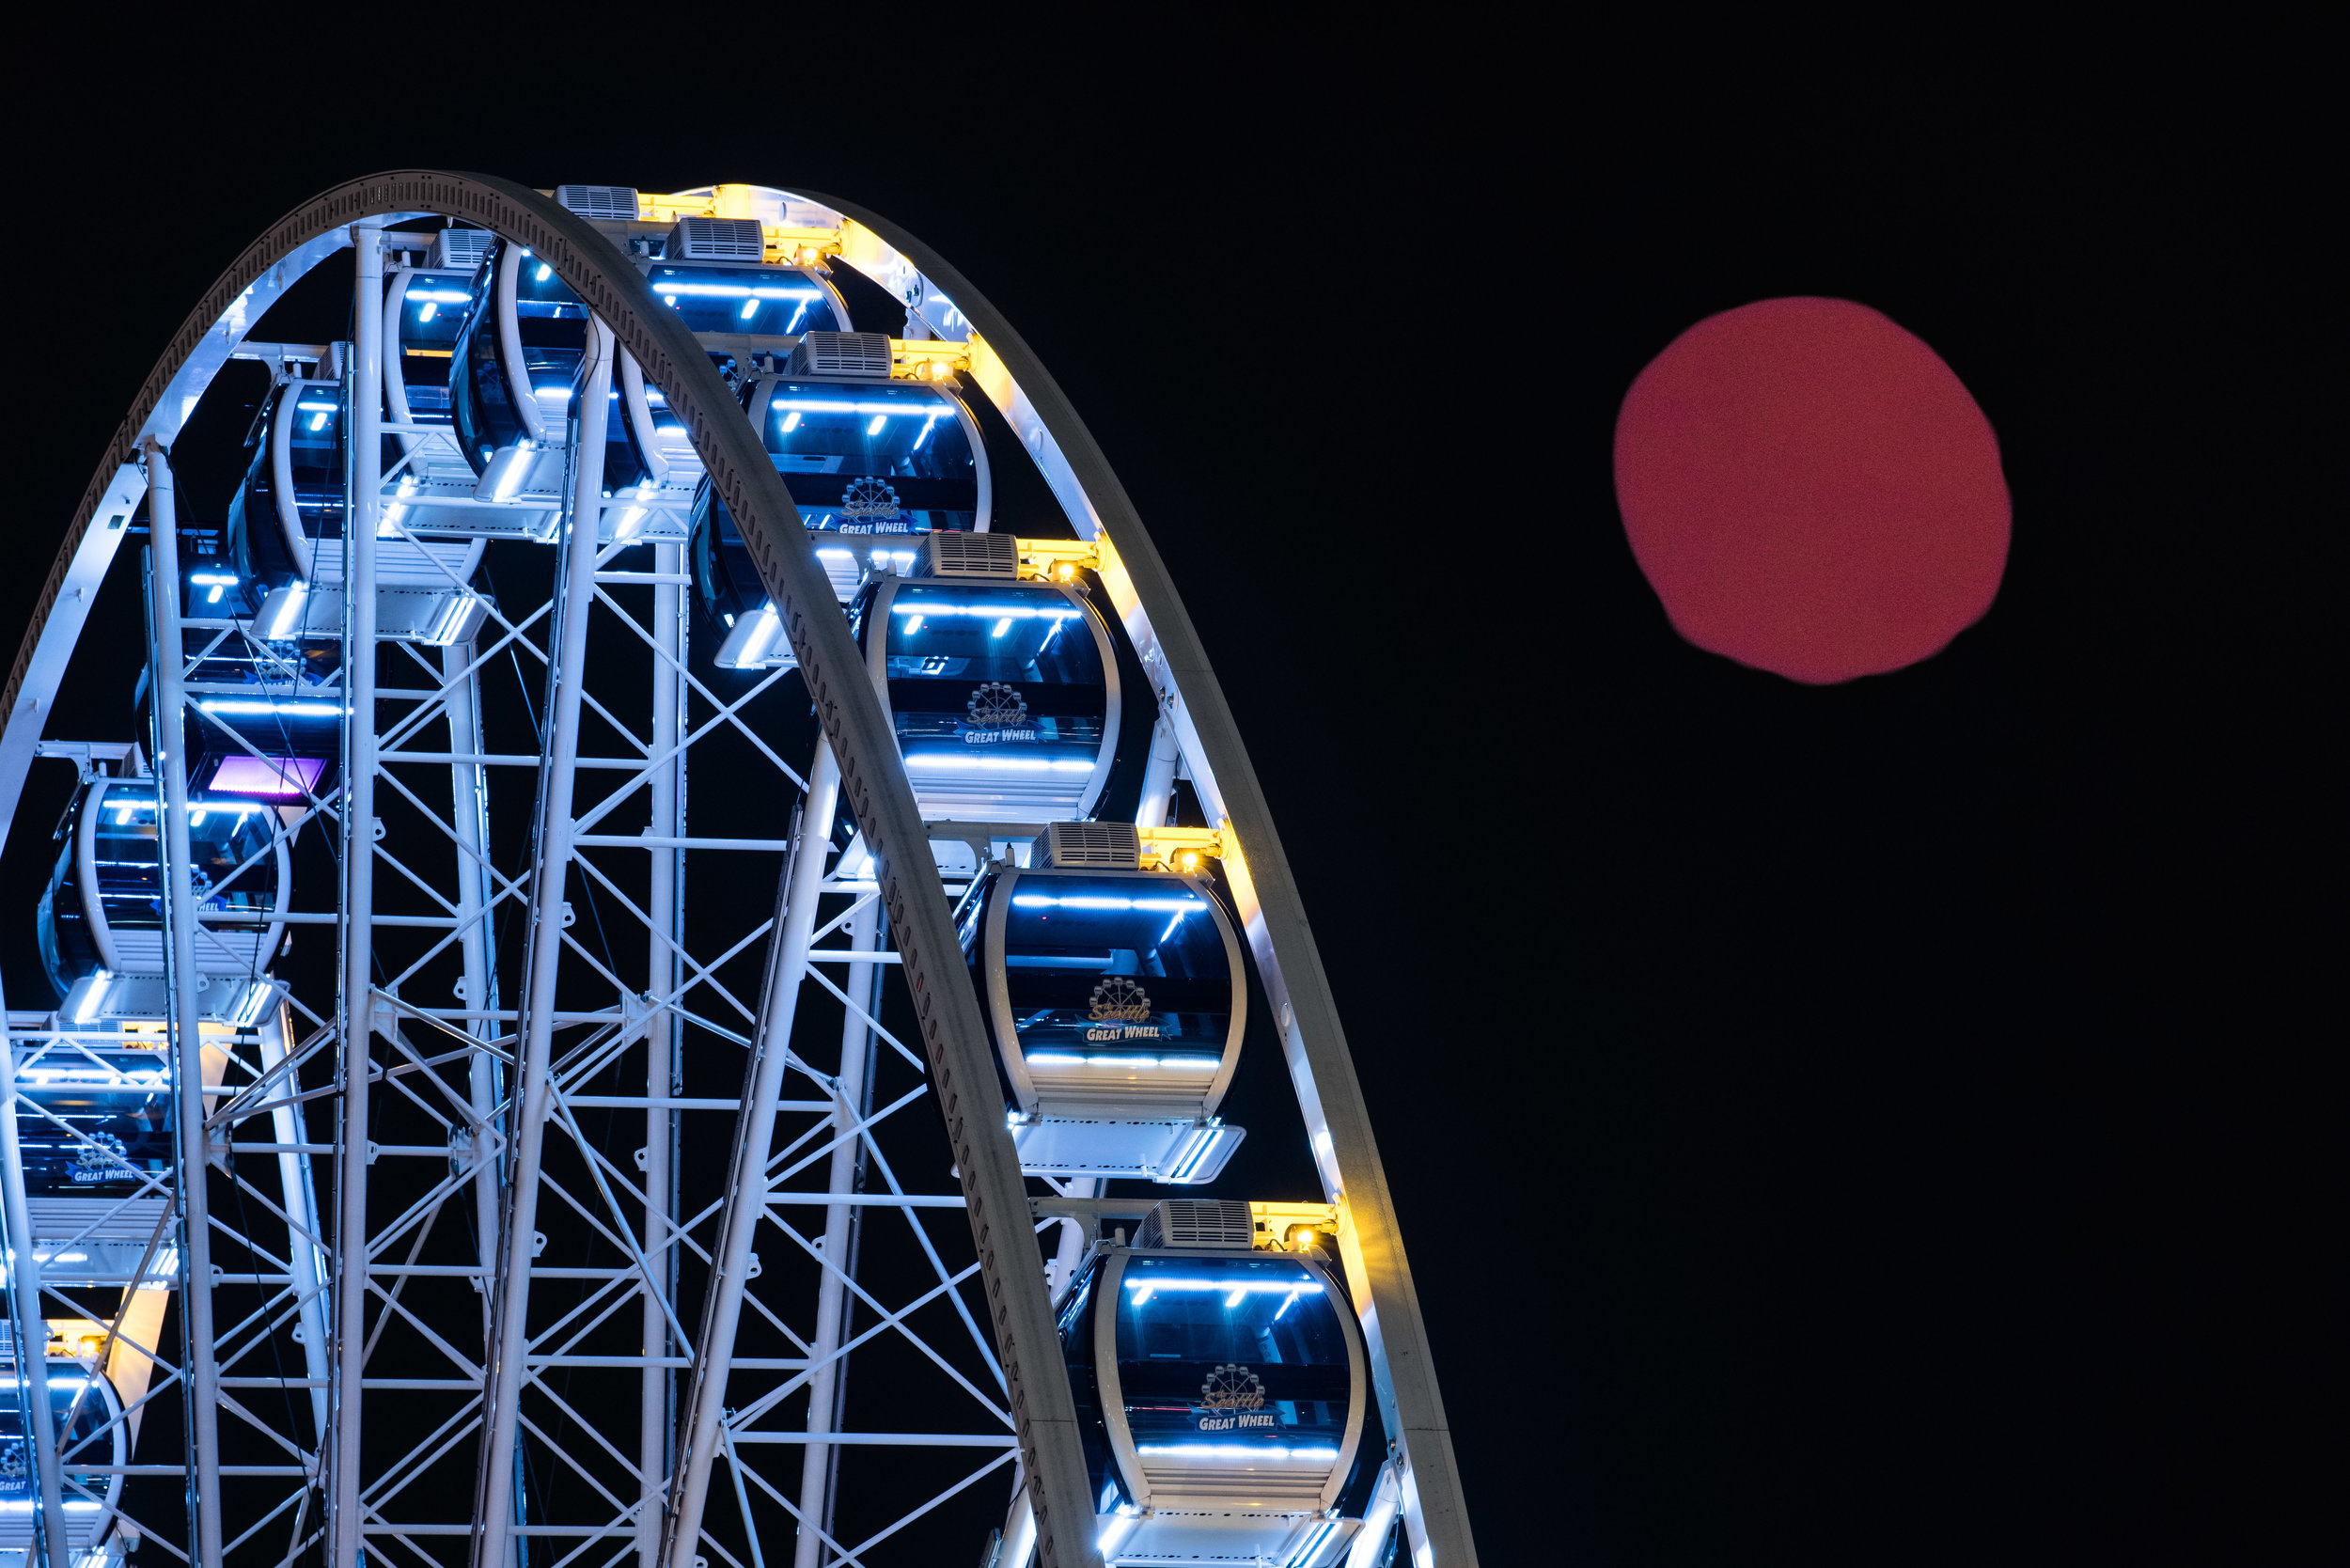 The January 31, 2018 Super Blood Moon rising over the Seattle Wheel via an advanced simulation using Microsoft Paint. Don't do what I did and keep an eye on that cloud cover in the iCSC app.